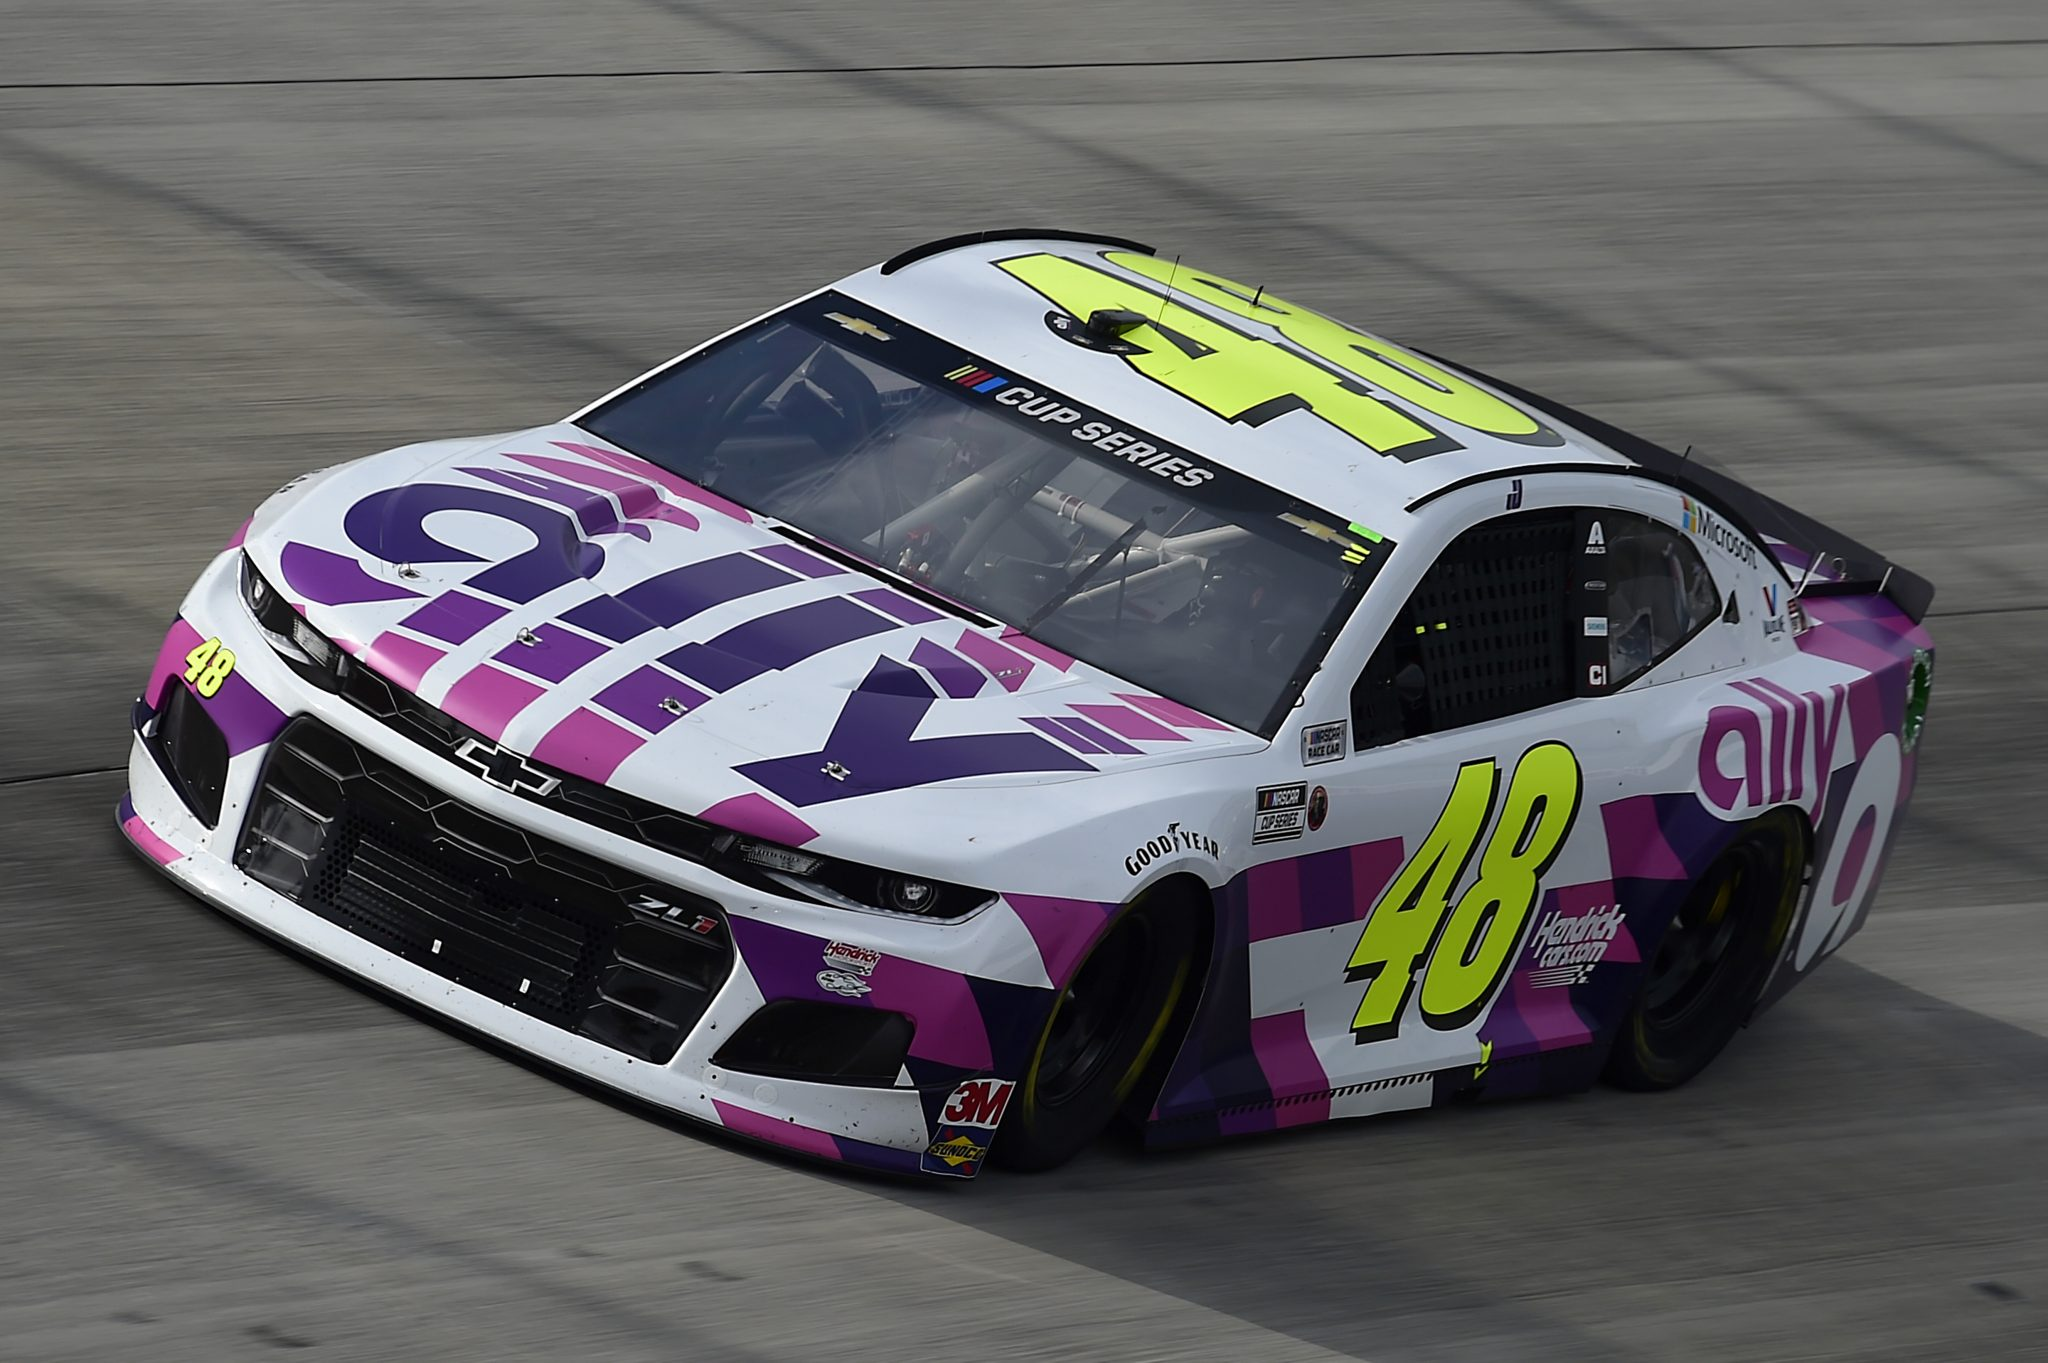 DOVER, DELAWARE - AUGUST 22: Jimmie Johnson, driver of the #48 Ally Chevrolet, drives during the NASCAR Cup Series Drydene 311 at Dover International Speedway on August 22, 2020 in Dover, Delaware. (Photo by Jared C. Tilton/Getty Images) | Getty Images